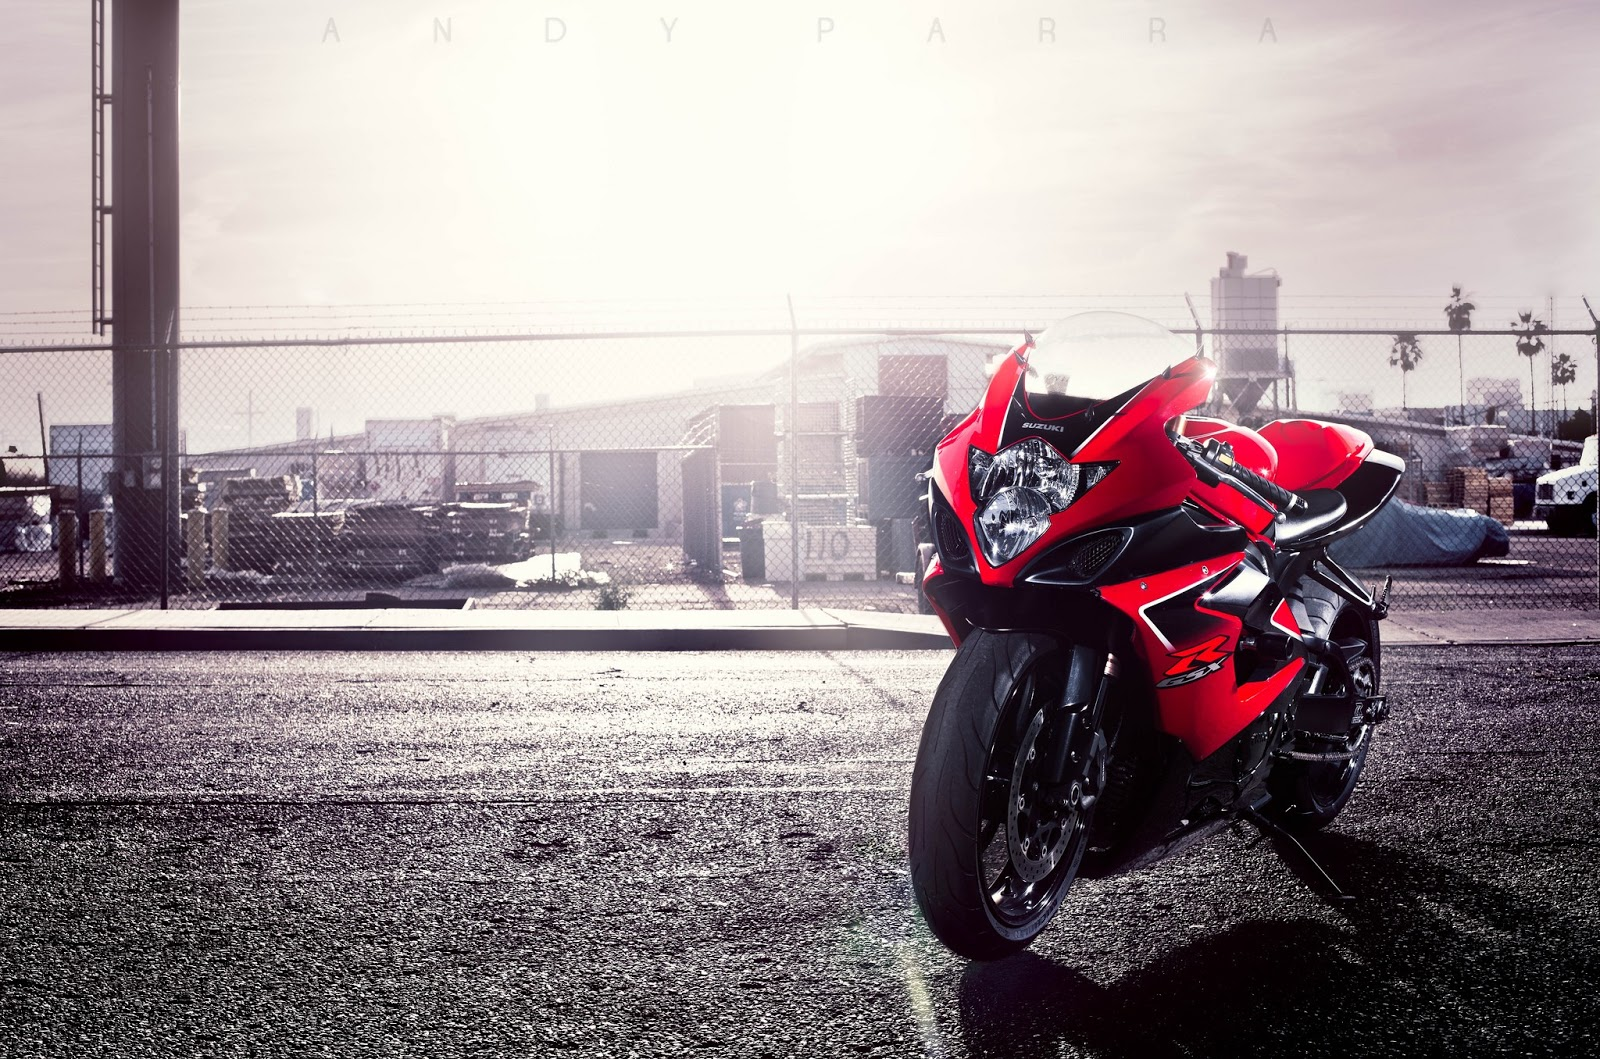 wallpapers hd motos - photo #3